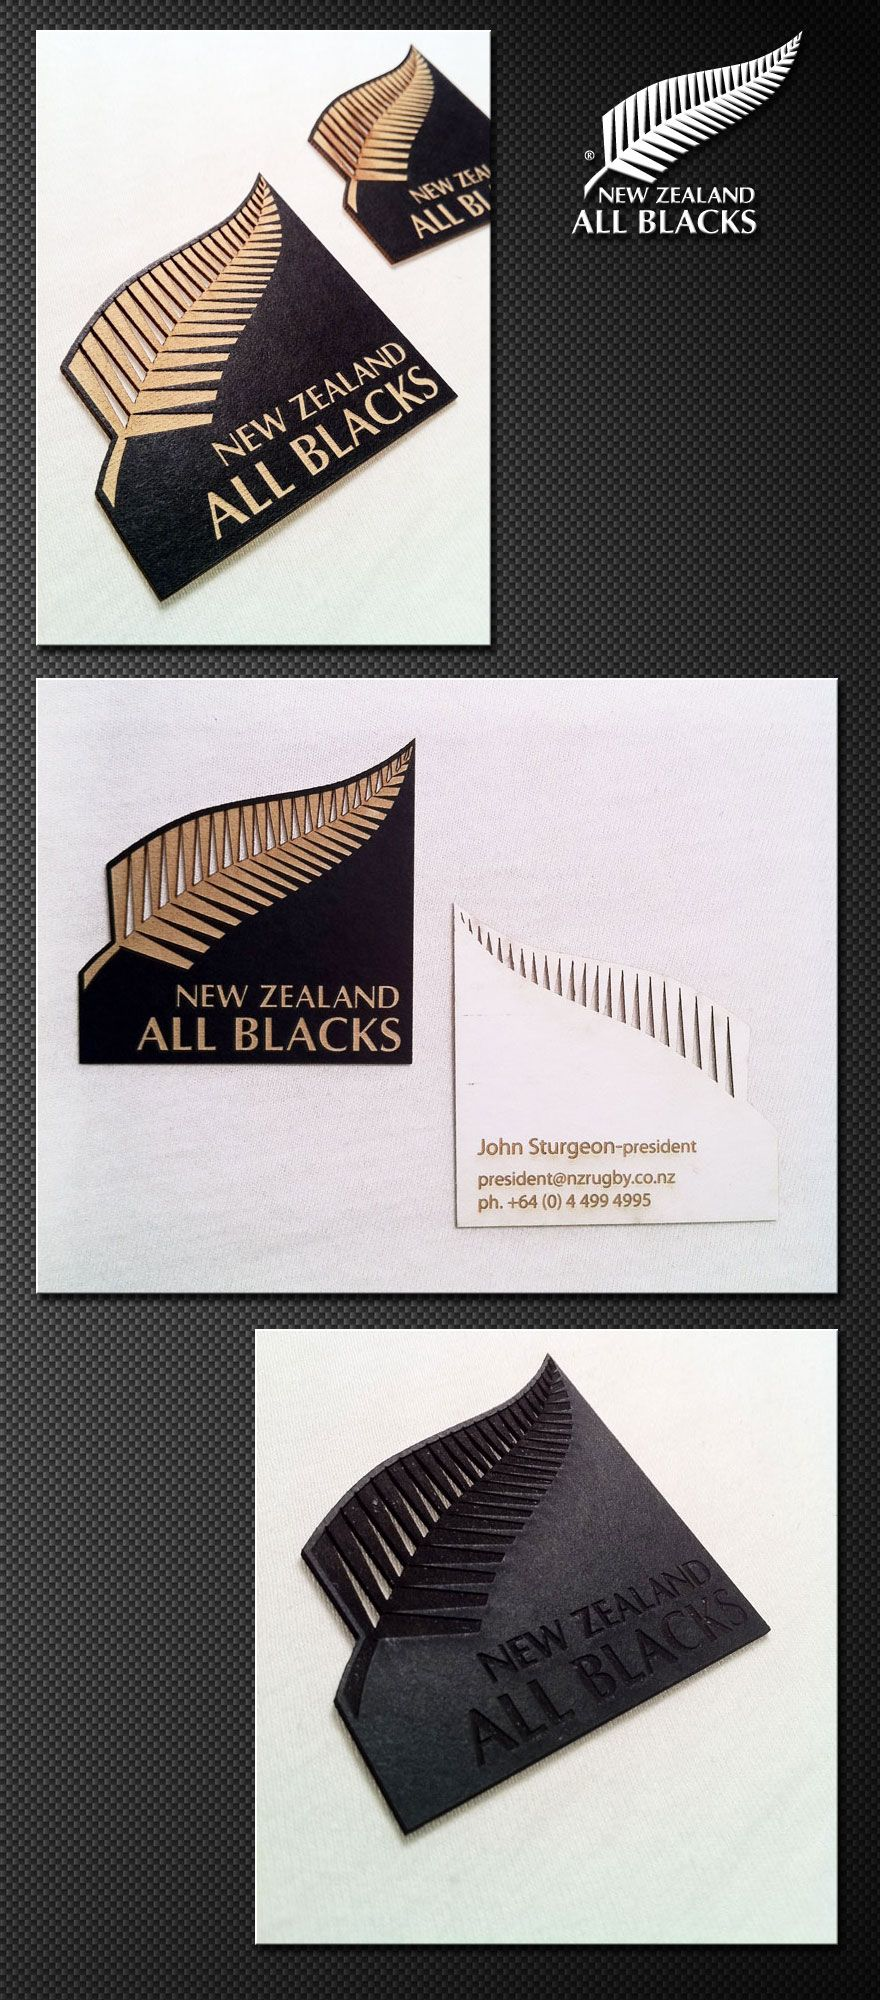 Inspirao cartes de visita rugby business cards and graphic inspirao cartes de visita choco la design examples of business cardssquare reheart Images